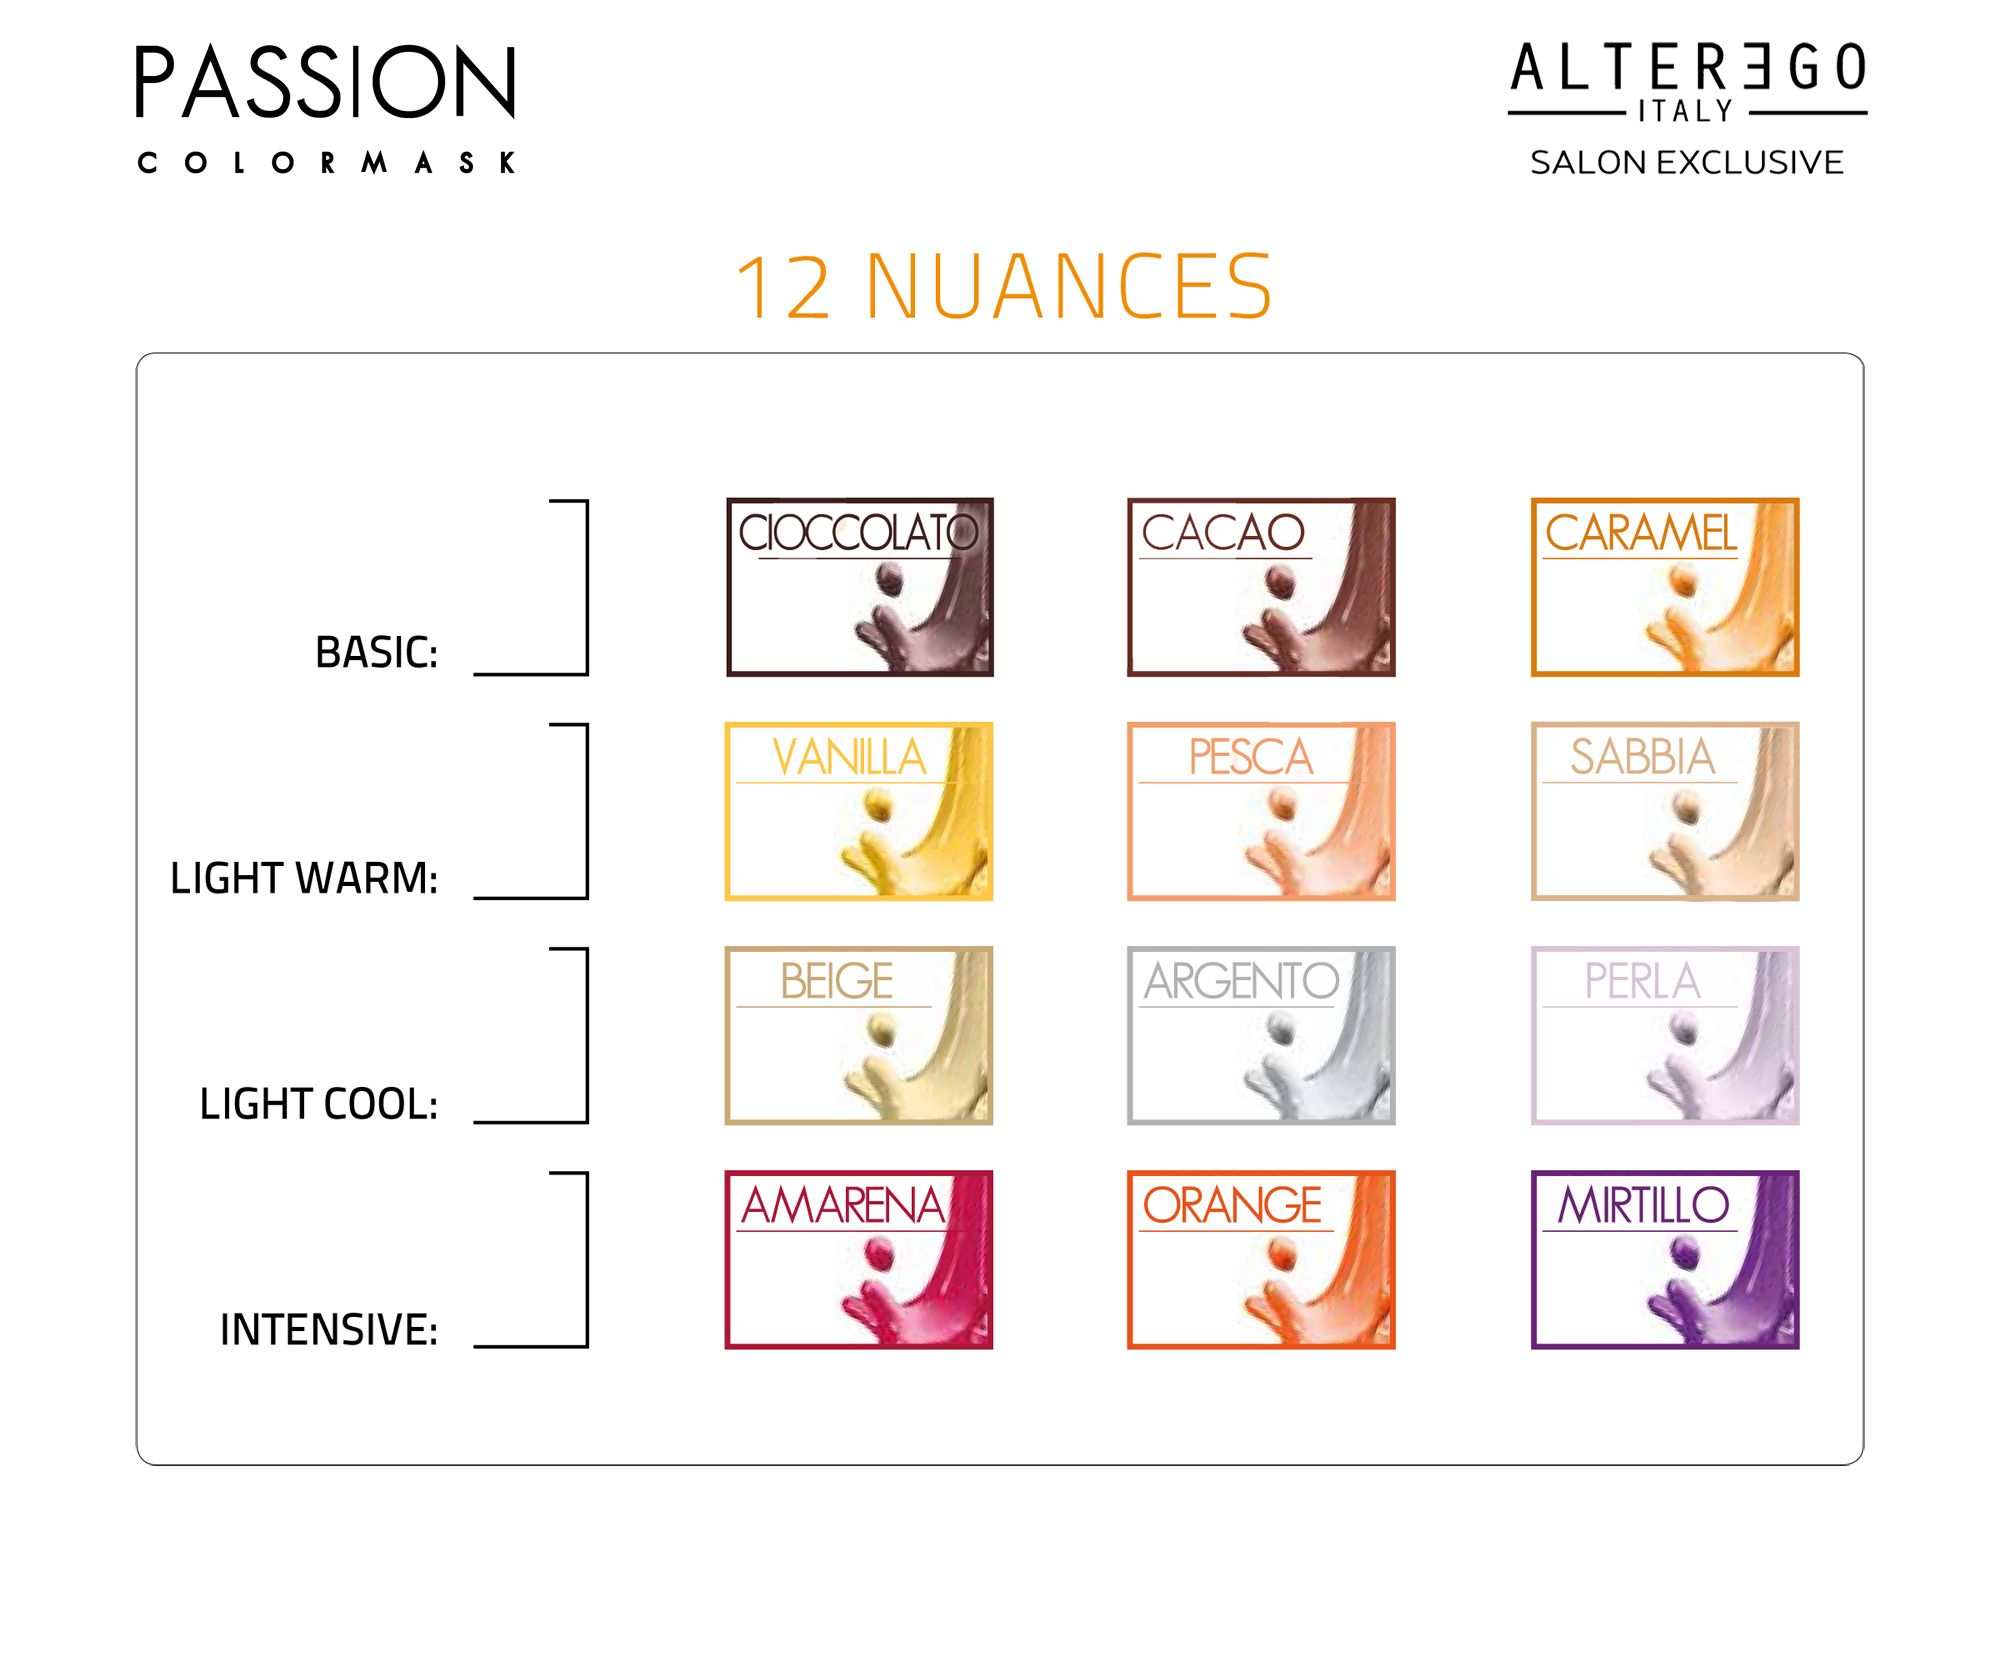 alter ego italy passion colormask 12 nuances color chart color